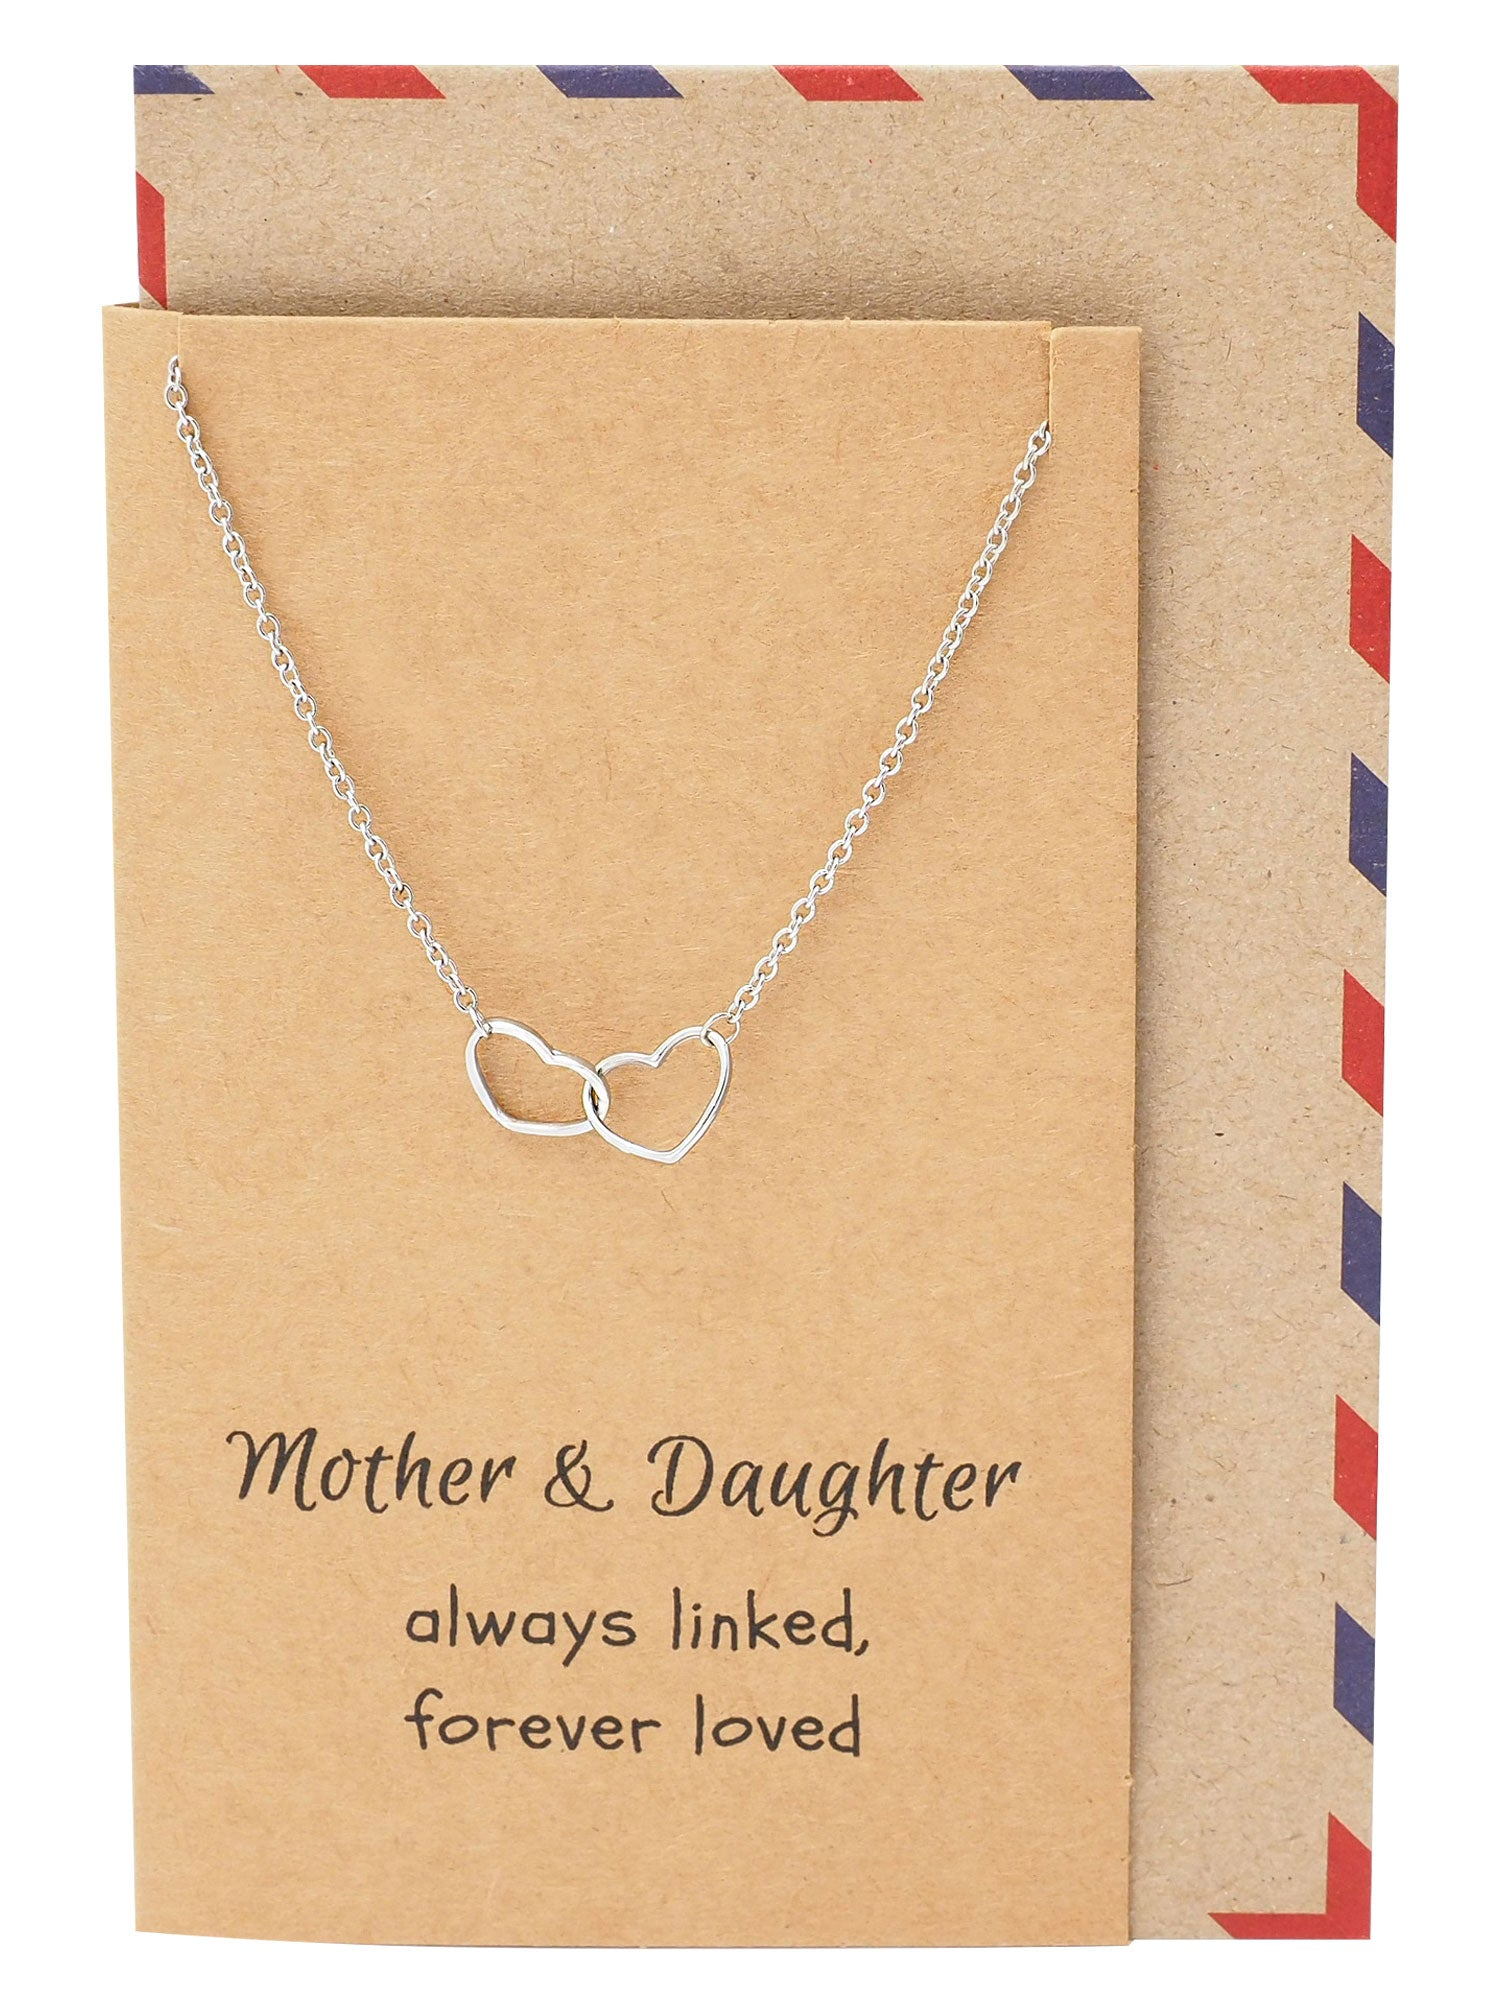 Stella Mother Daughter Necklace, Double Heart Necklaces for Women